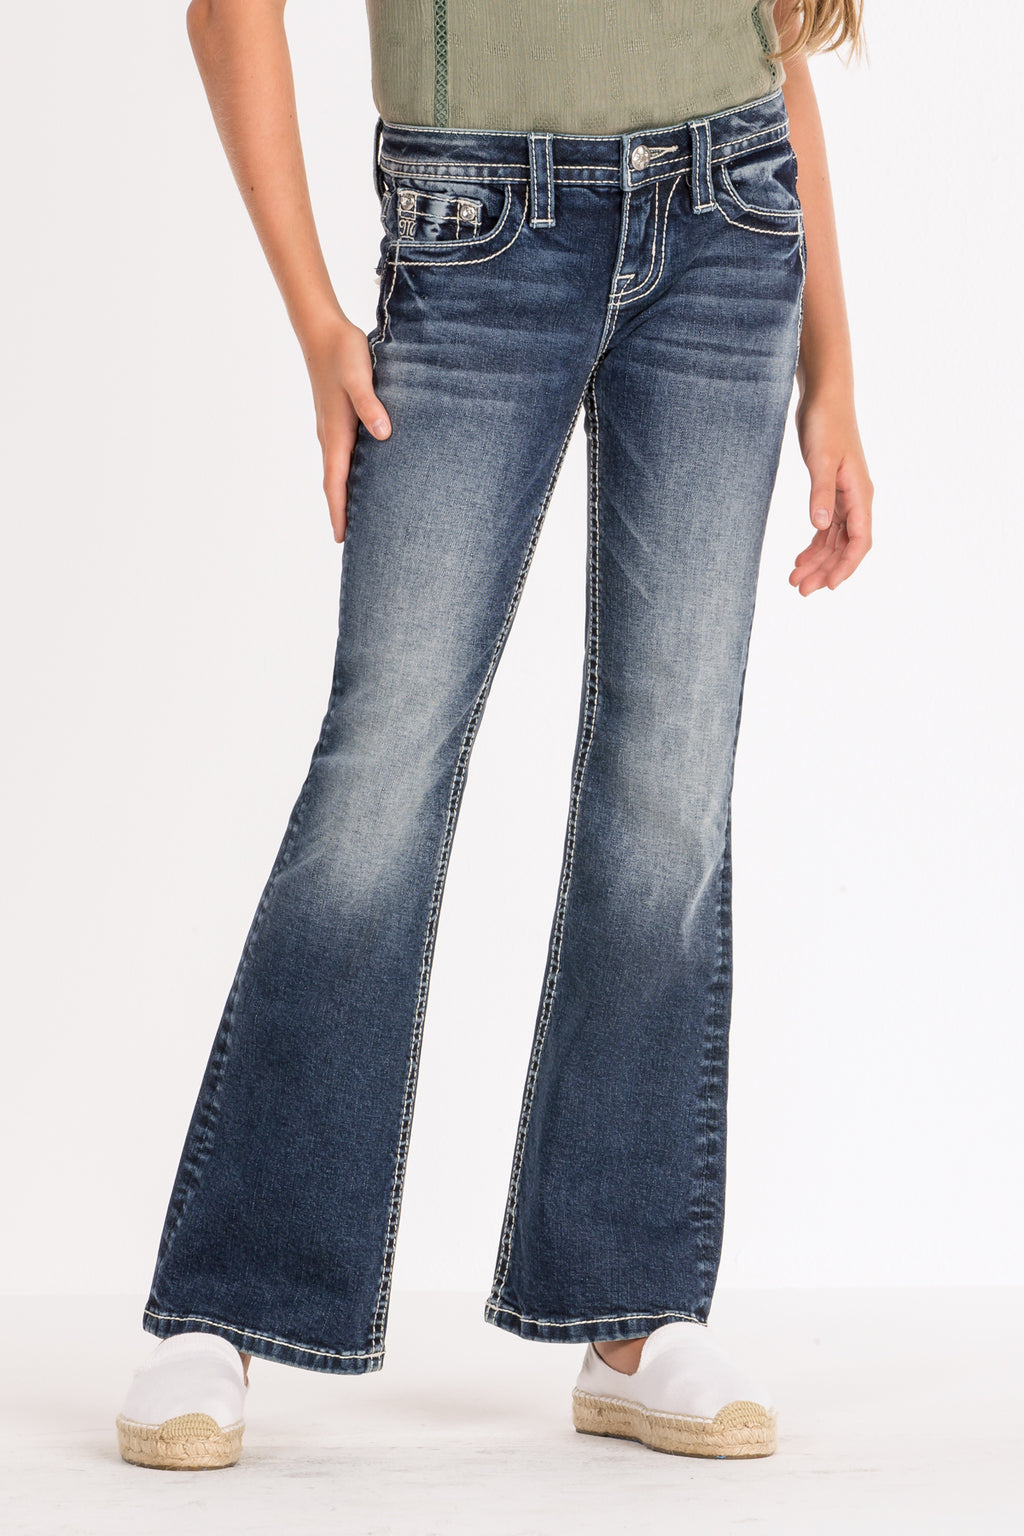 54abceee0a0 GIRLS FRILLY AND FLIRTY BOOTCUT JEANS - front